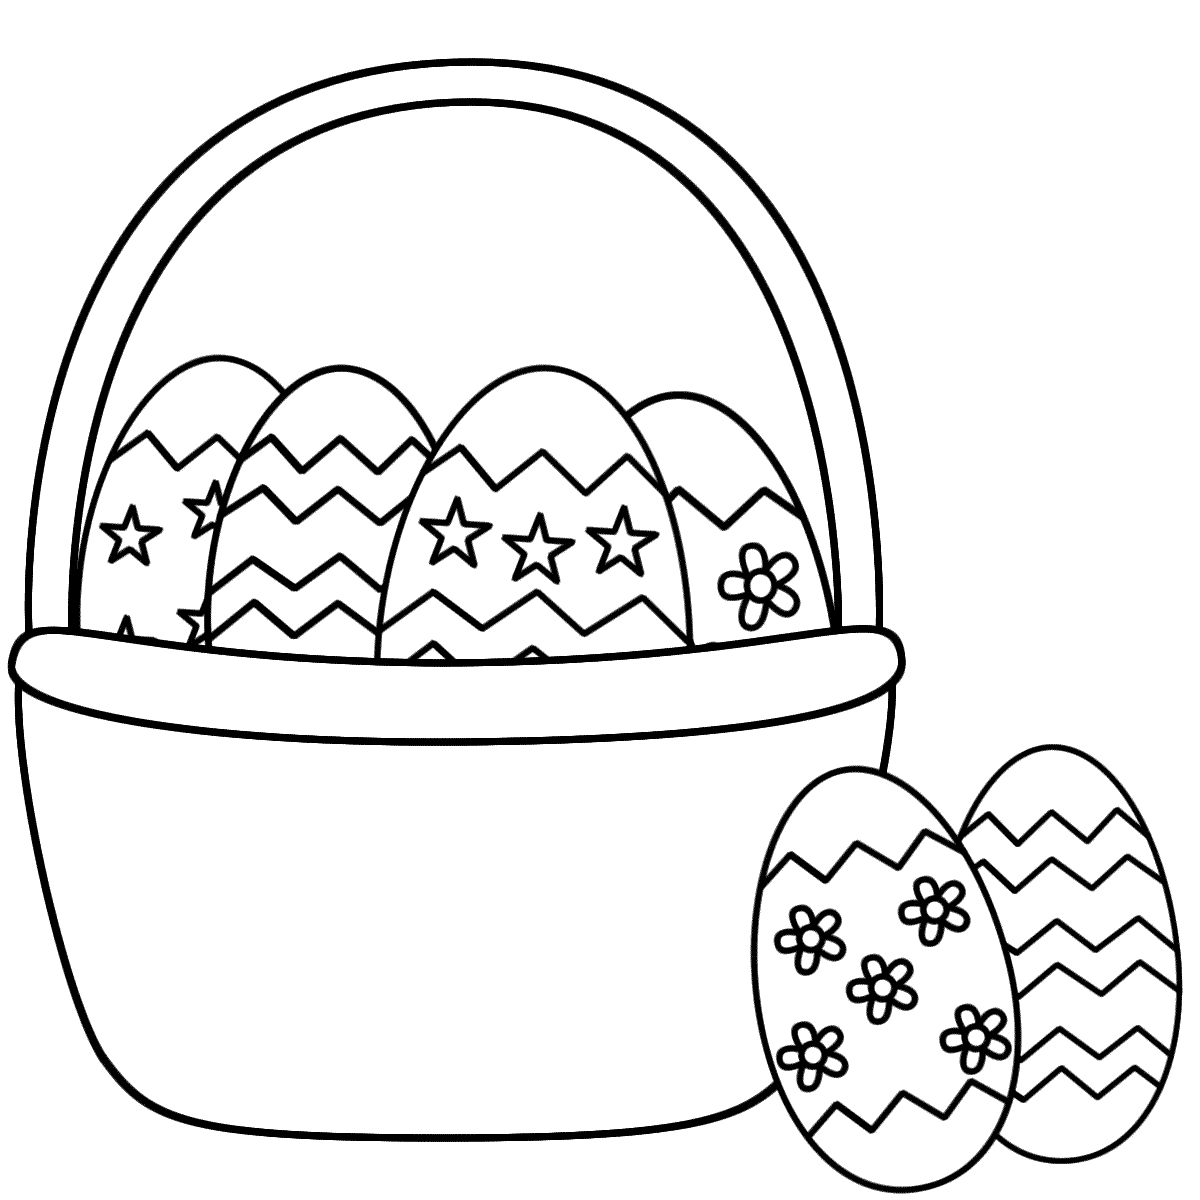 Easter basket coloring pages to